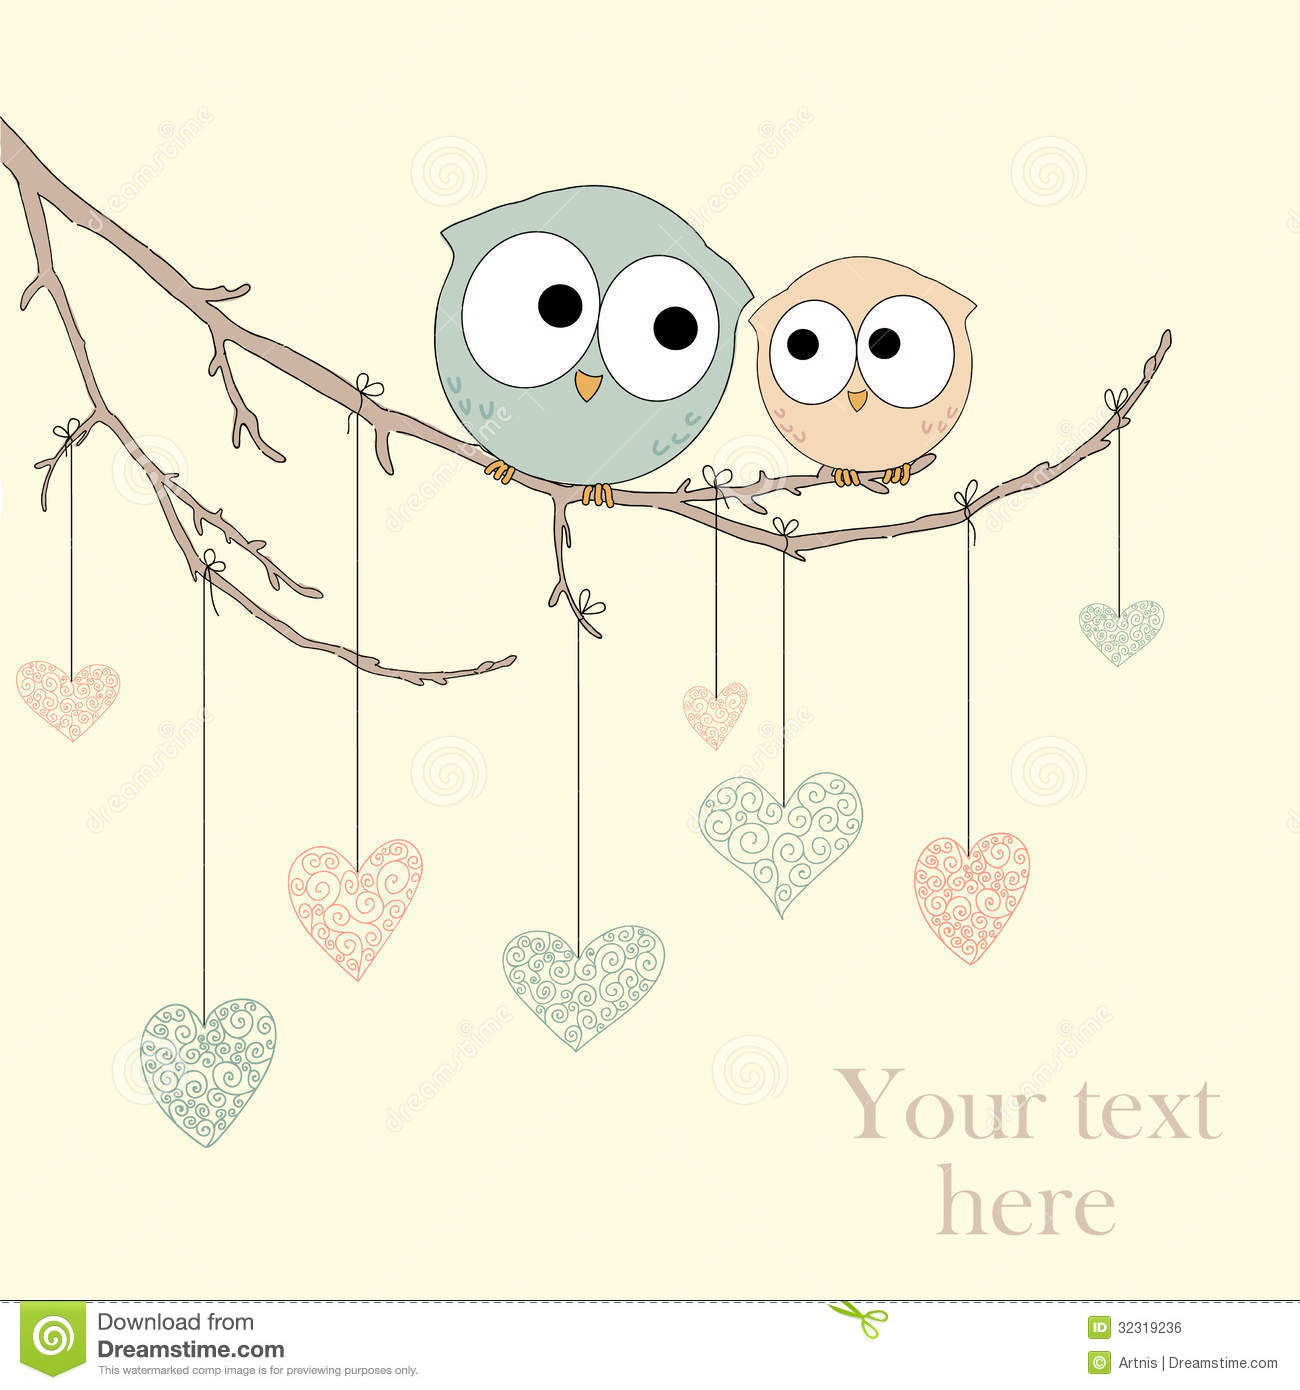 Greeting card with cute owls in love stock vector illustration of greeting card with cute owls in love background feminine m4hsunfo